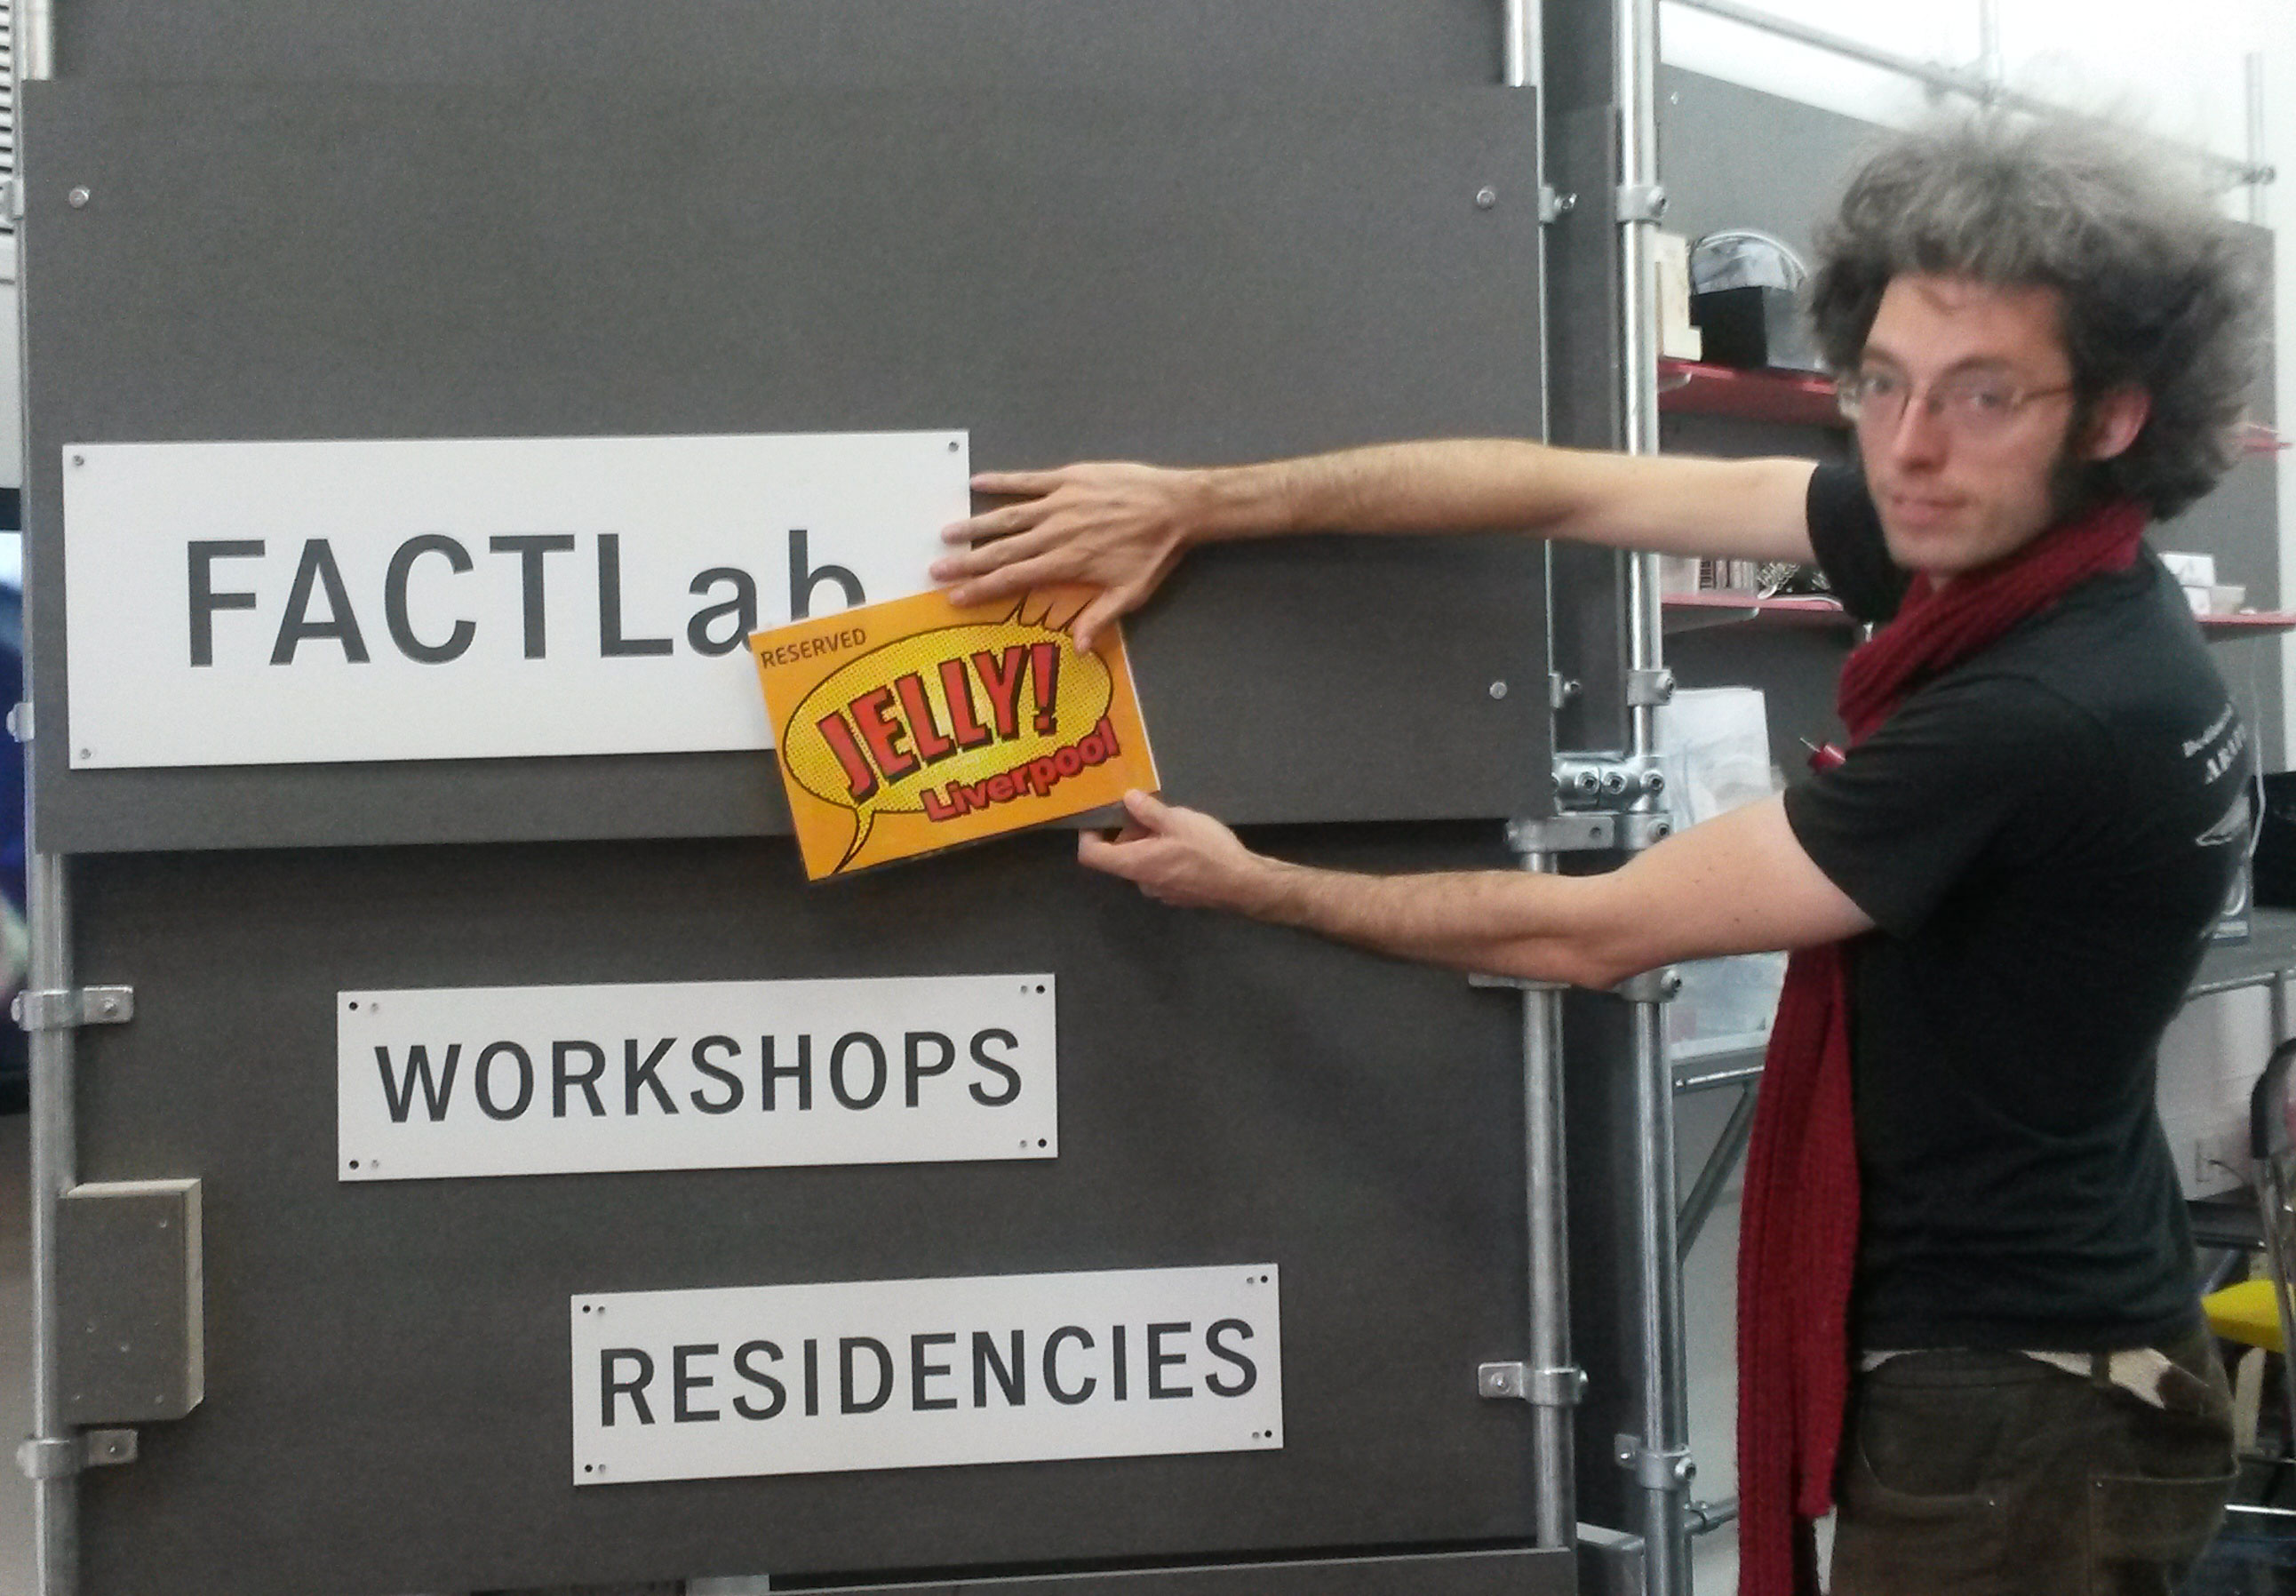 FactLab has been reserved for Jelly Liverpool